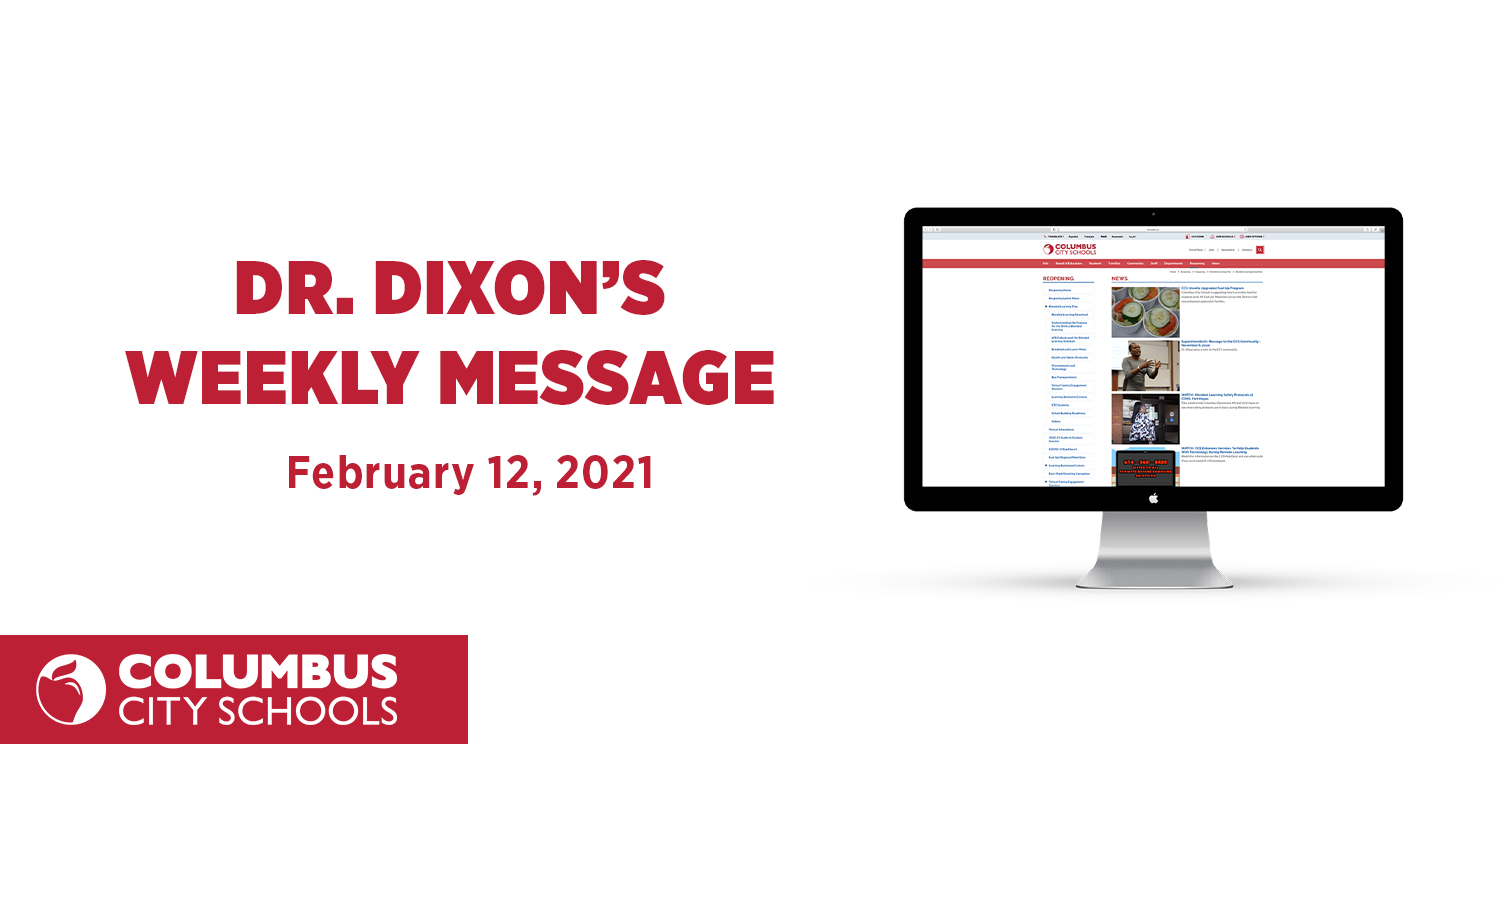 Dr. Dixon's Message